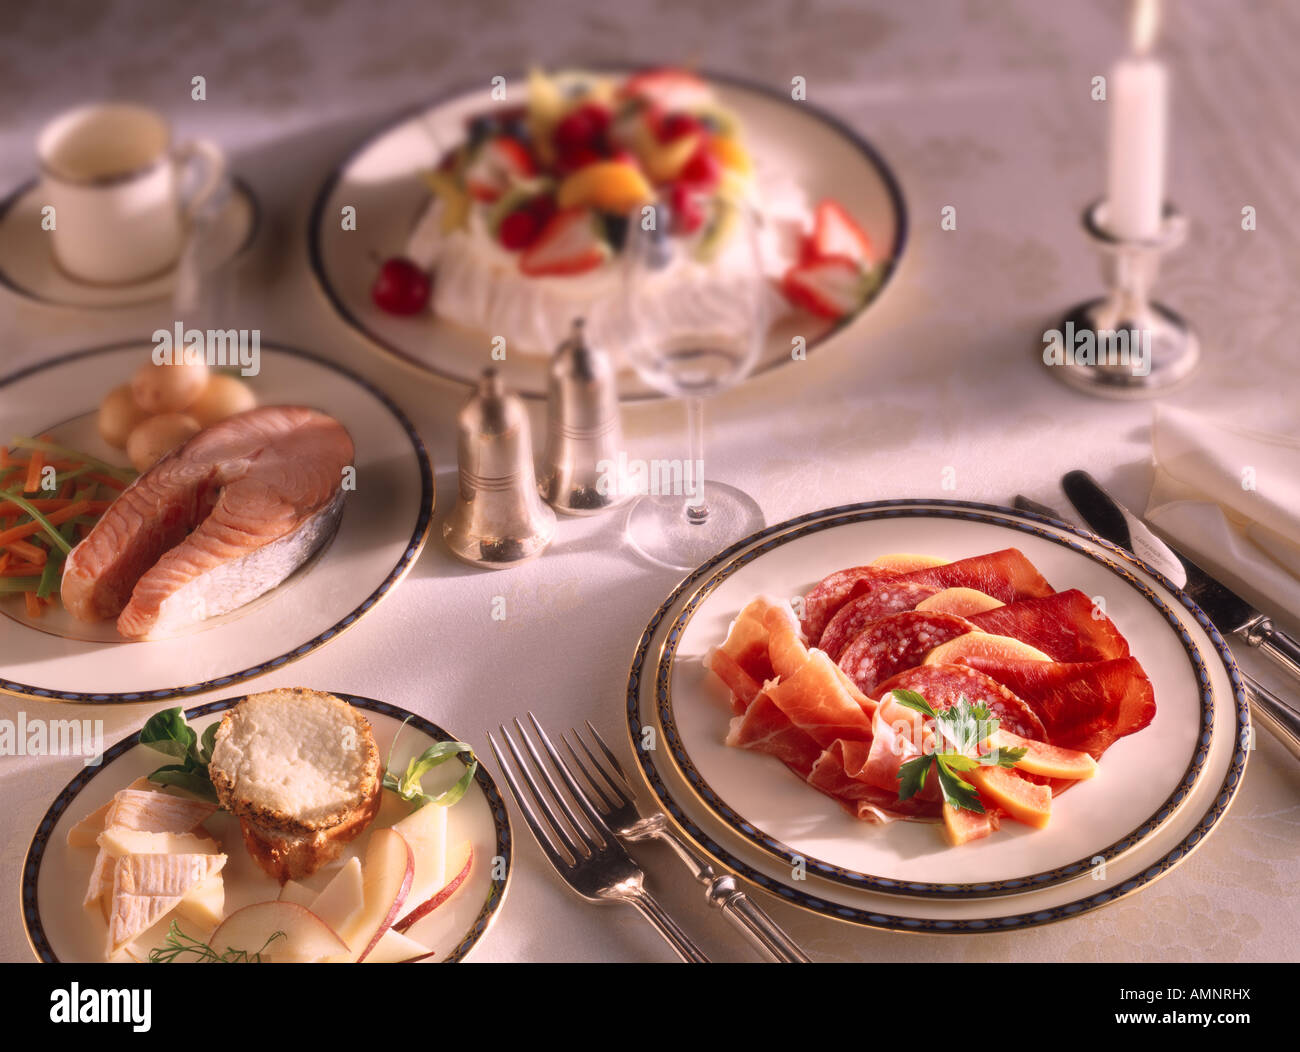 Complete meal of starter Charcutterie, Main Course, Salmon Steak ...